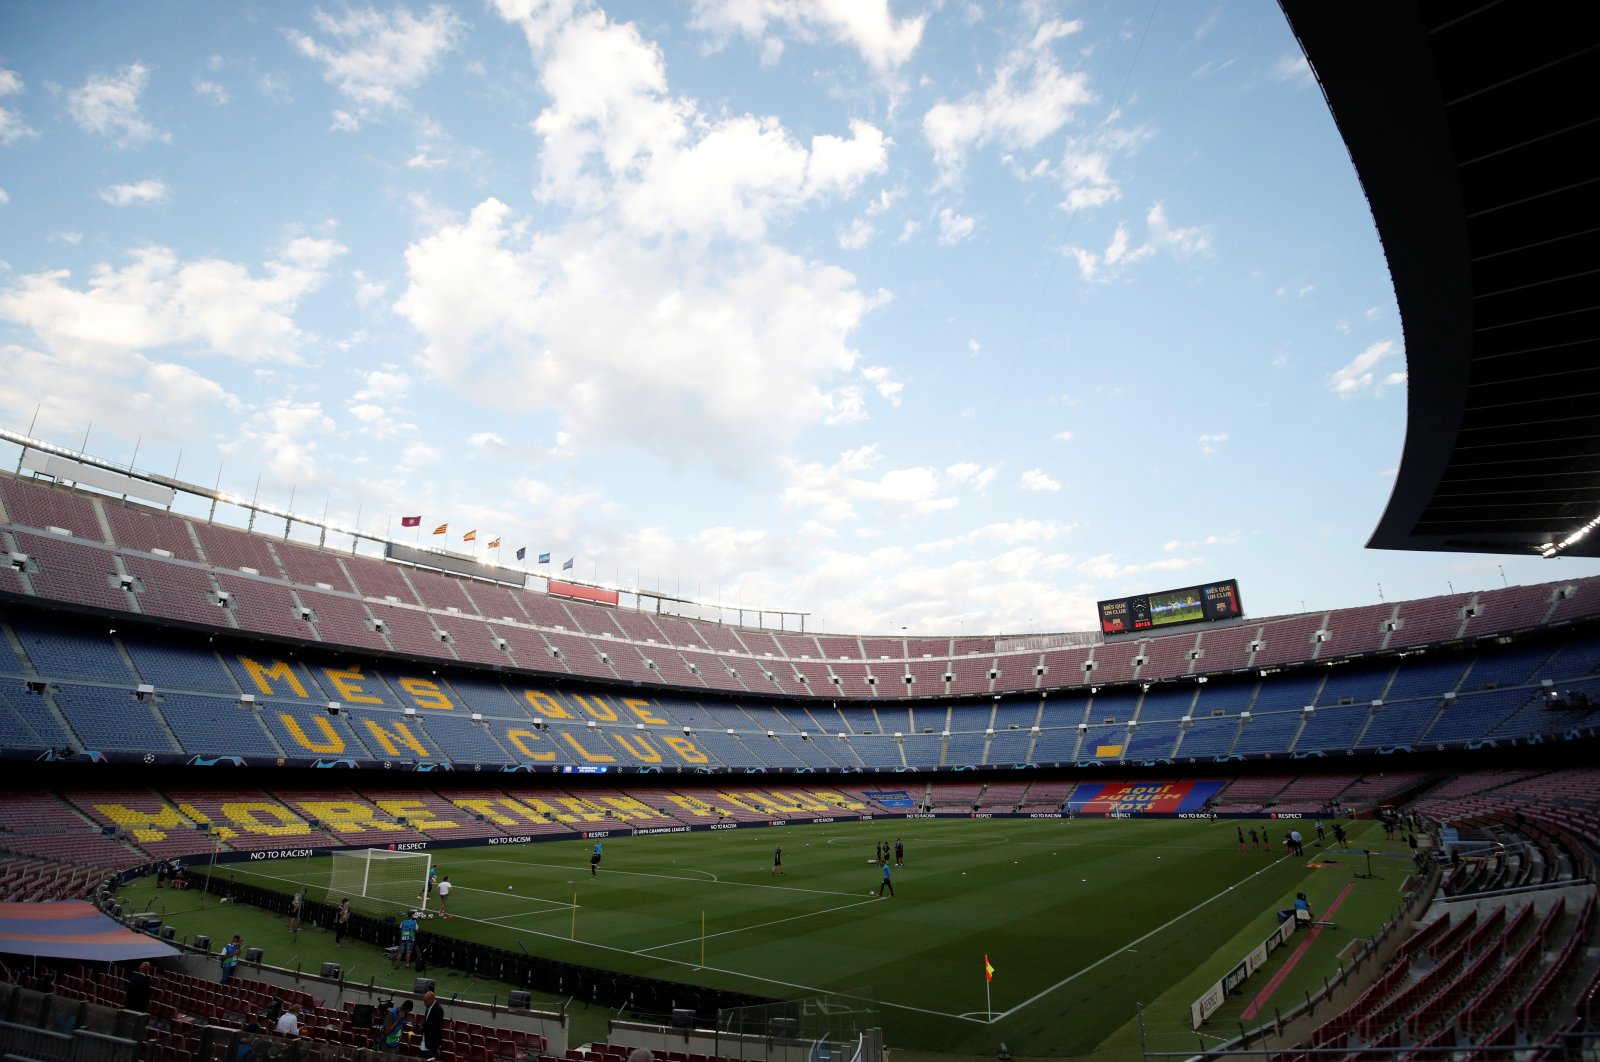 A general view inside Camp Nou stadium, in Barcelona, Spain, Aug. 8, 2020. (Reuters Photo)